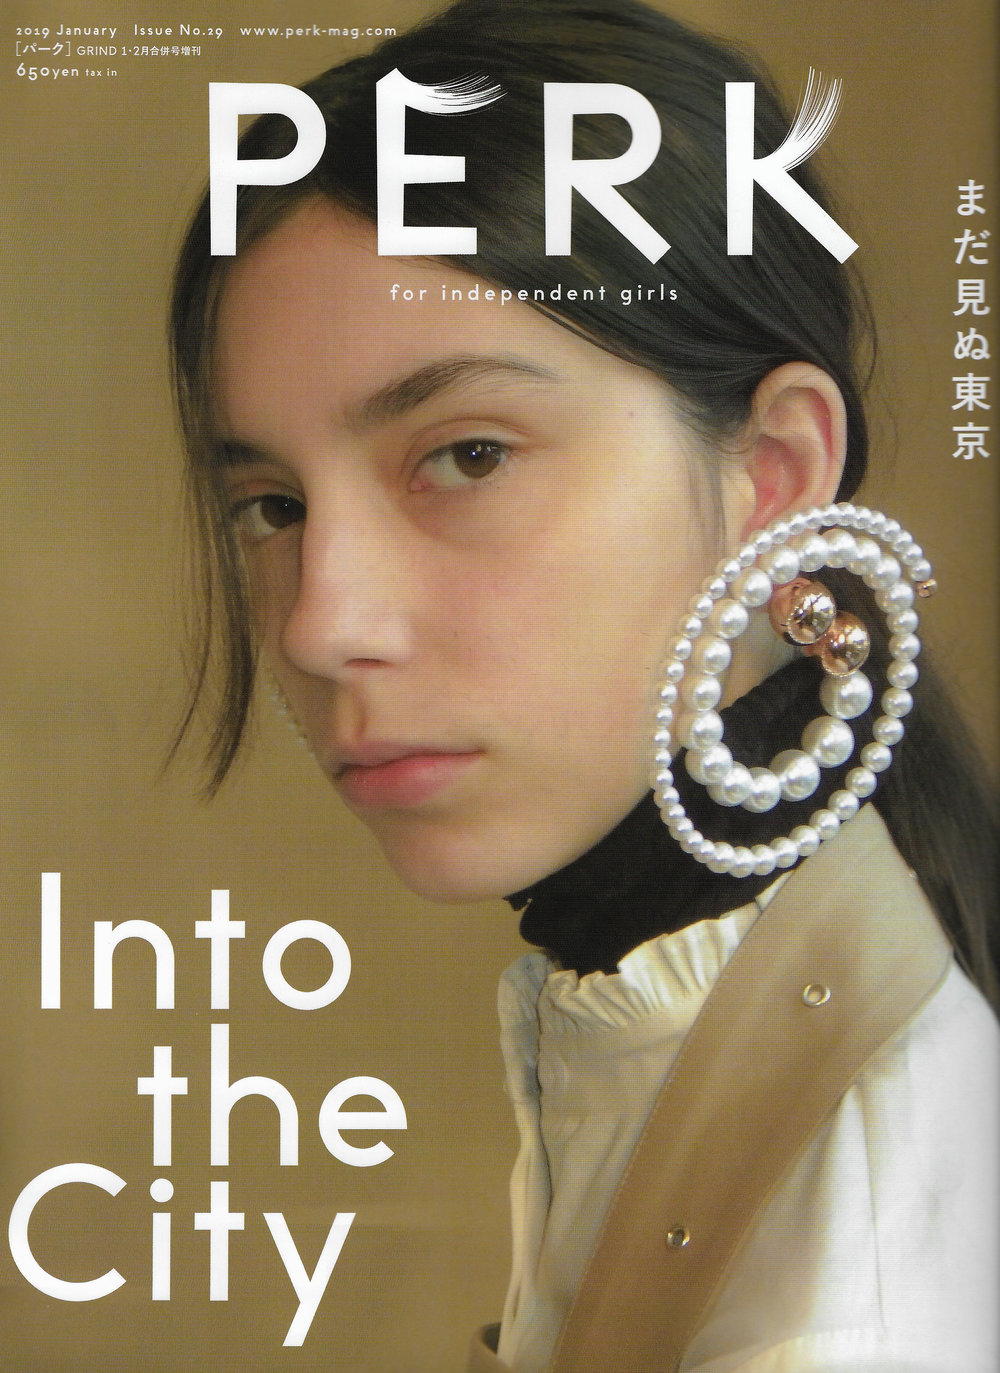 PERK MAGAZINE ISSUE NO 29 - 1.jpg